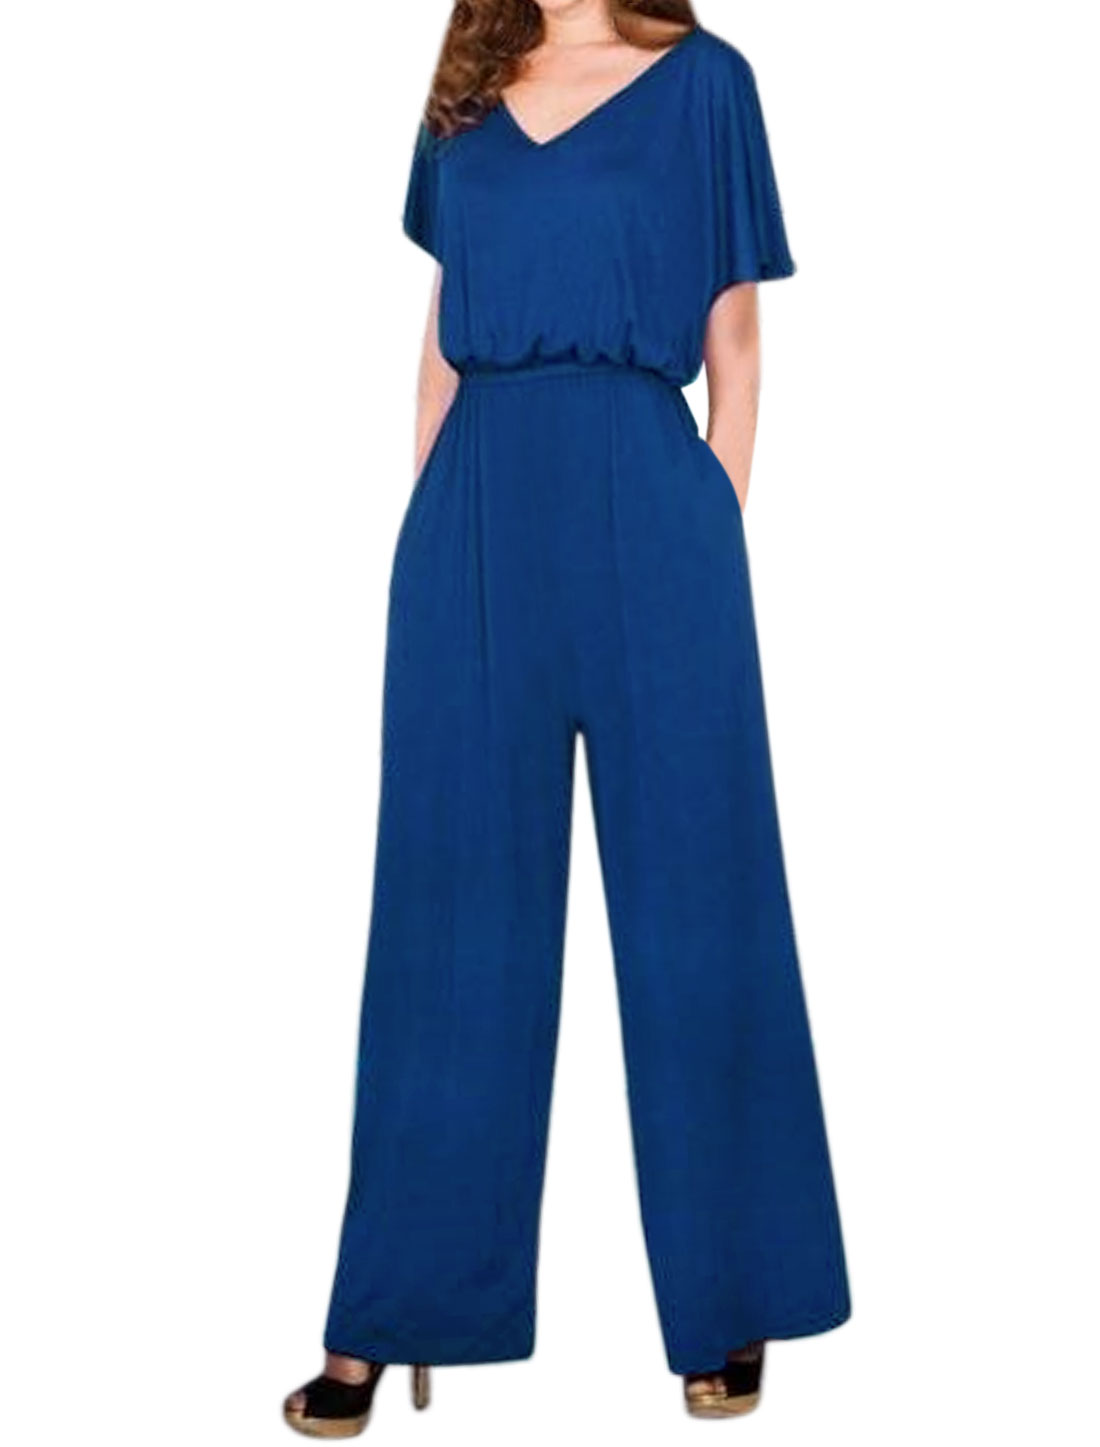 Women Cut Out Back Wide Leg Batwing Jumpsuit Blue M